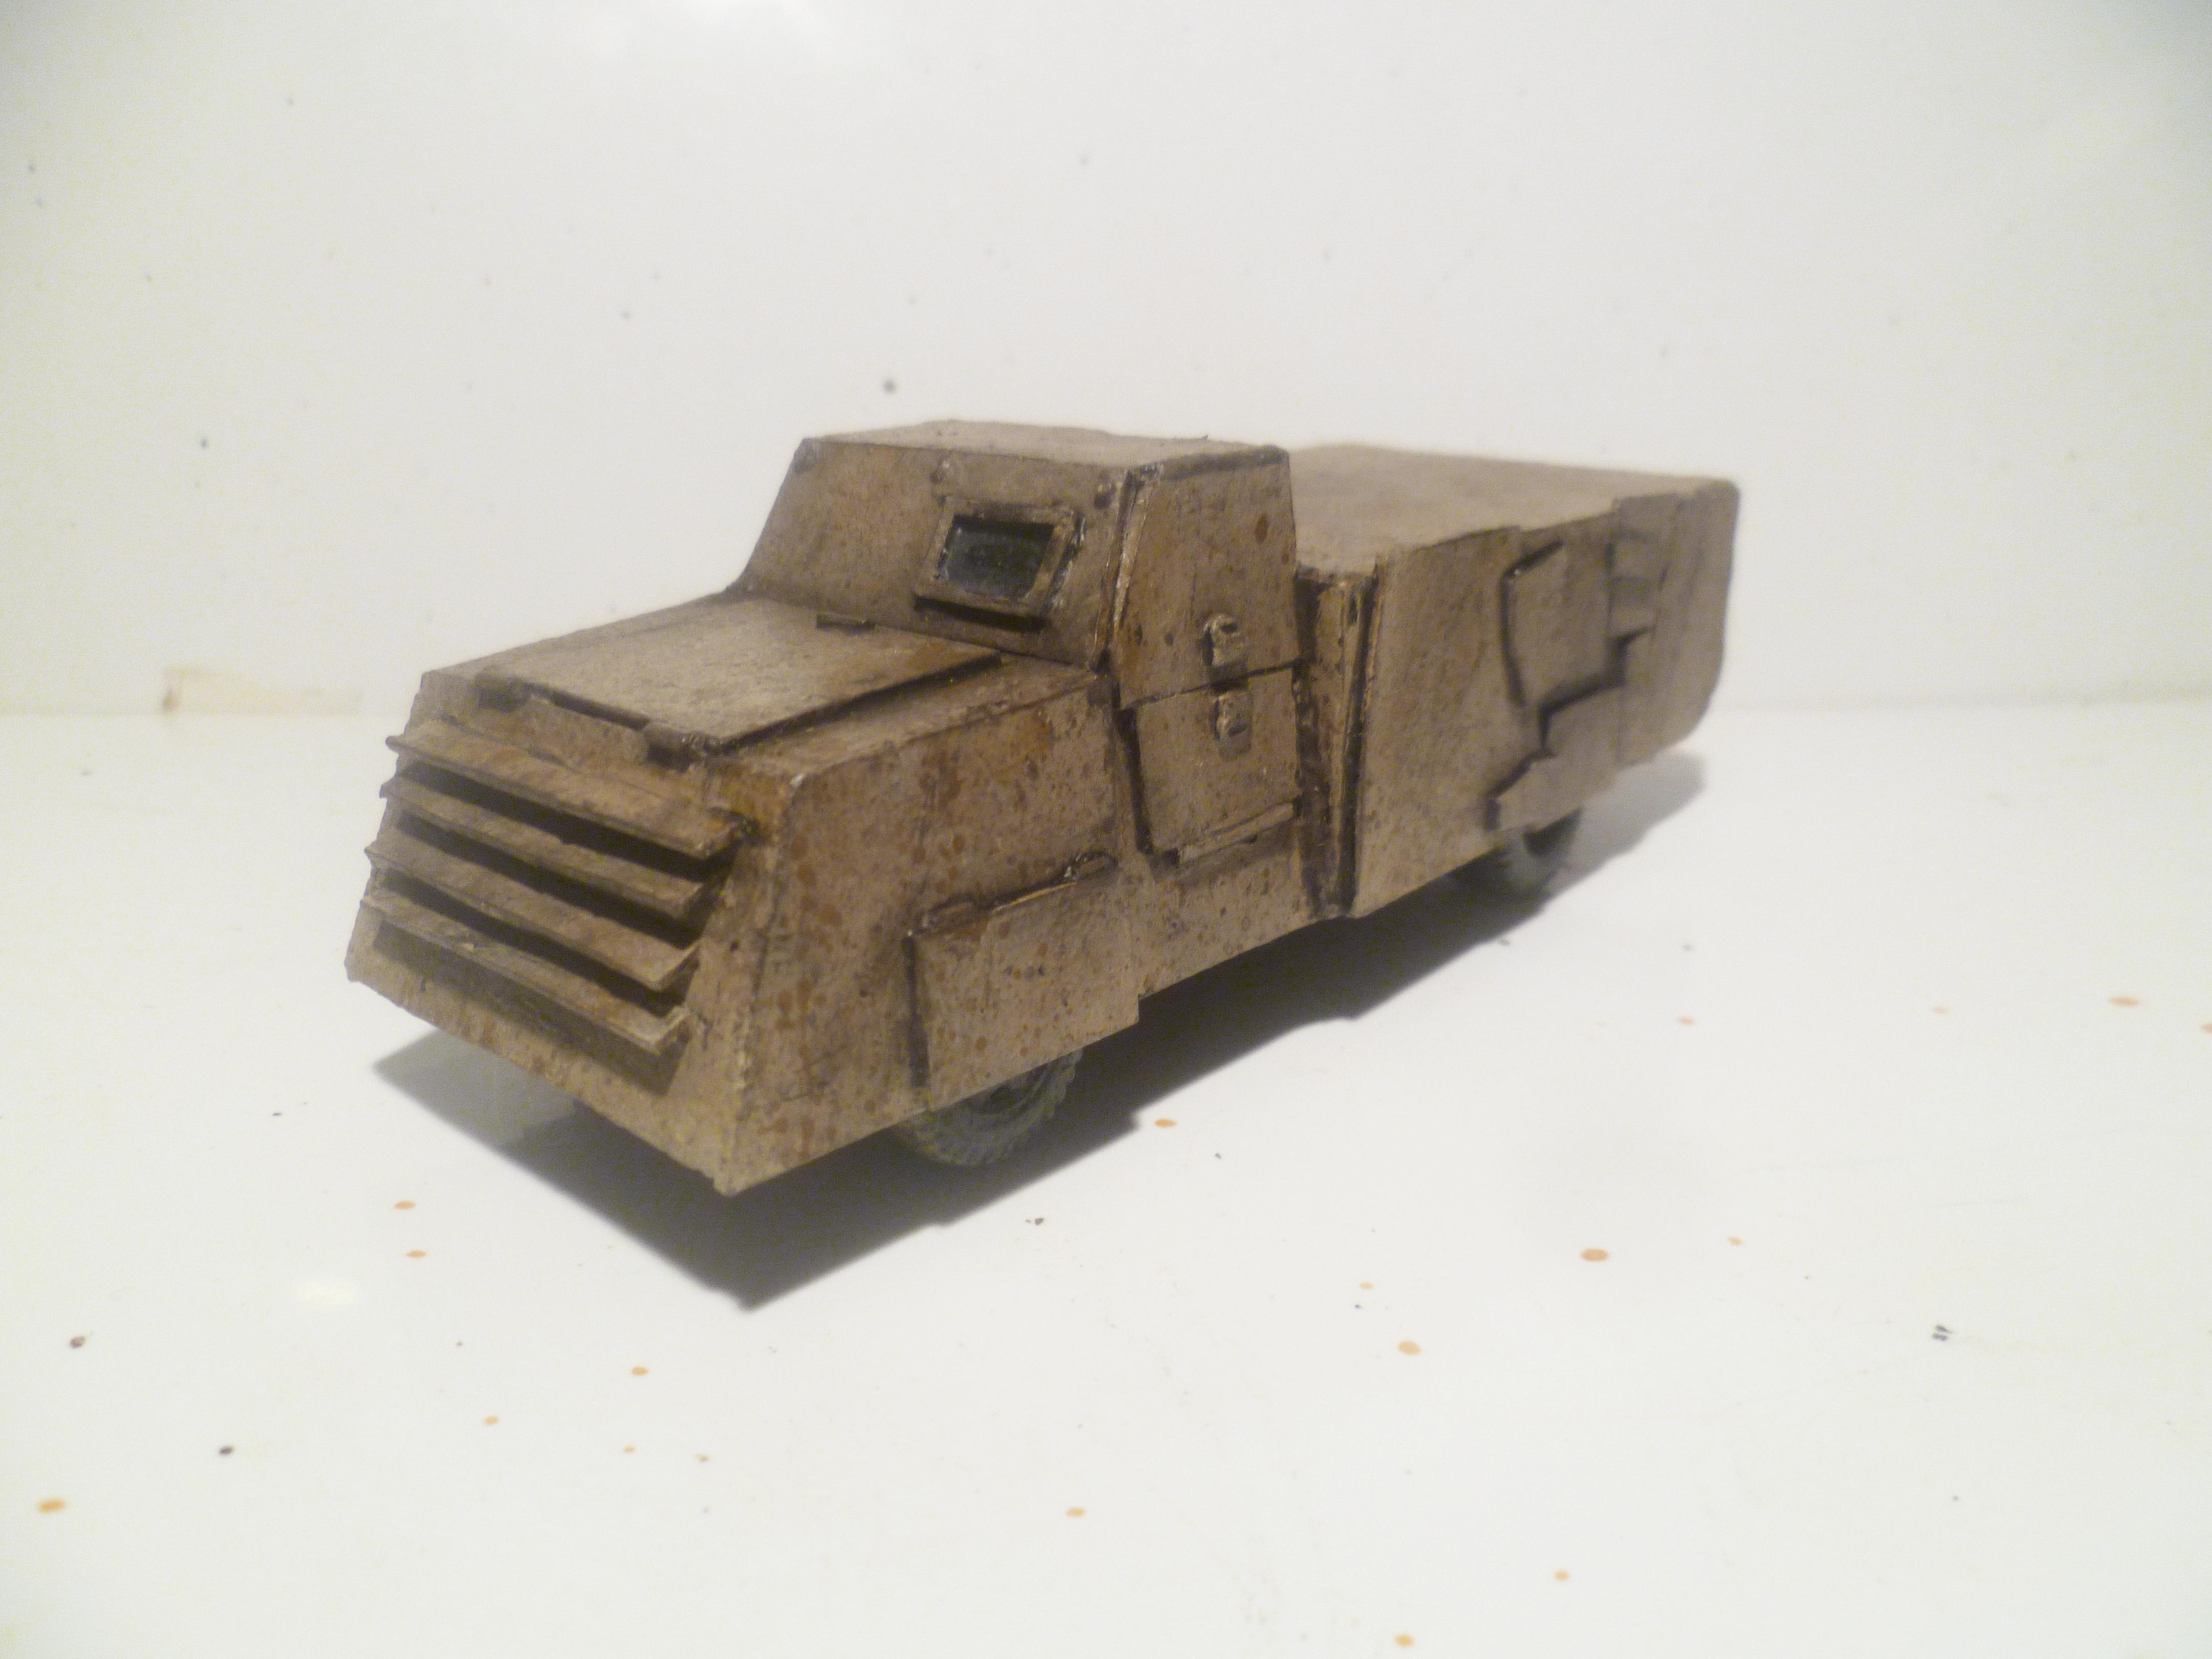 28mm, Armoured, Conversion, Desert, Ied, Improvised, Insurgent, Metal, Middle East, Modern, Scrap, Truck, Vbied, Vehicle